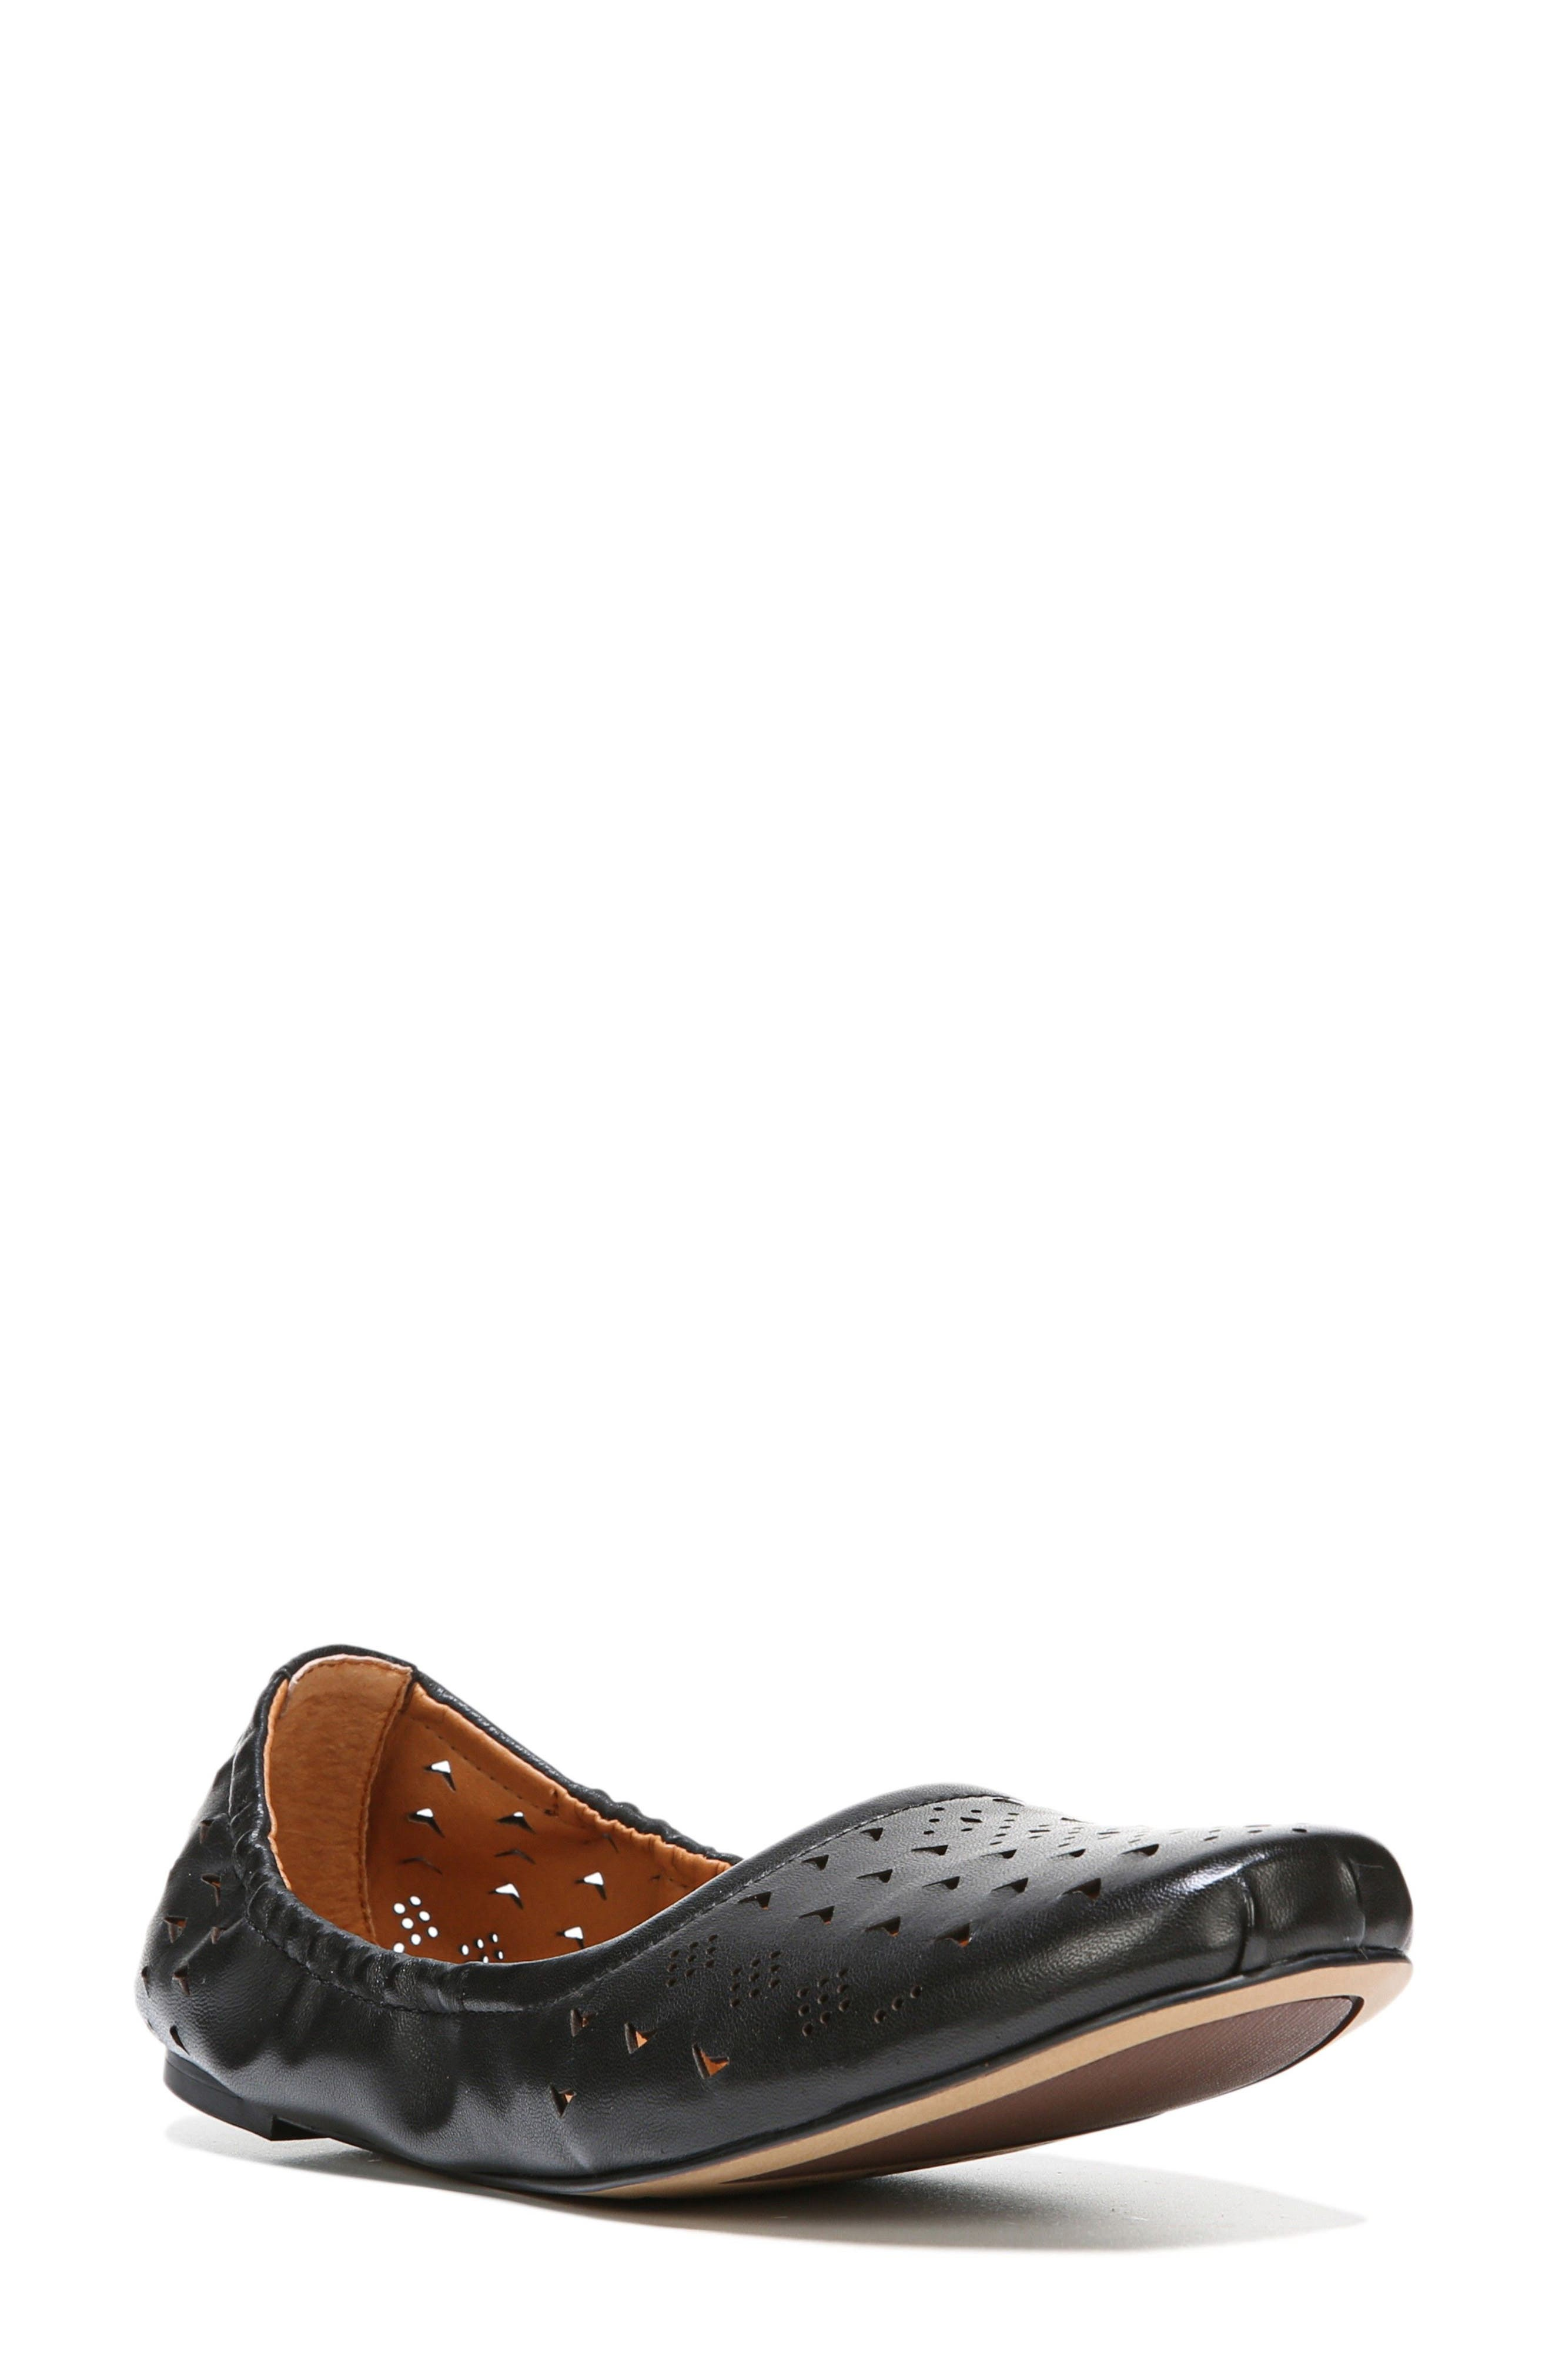 Brewer Perforated Ballet Flat,                         Main,                         color, 001